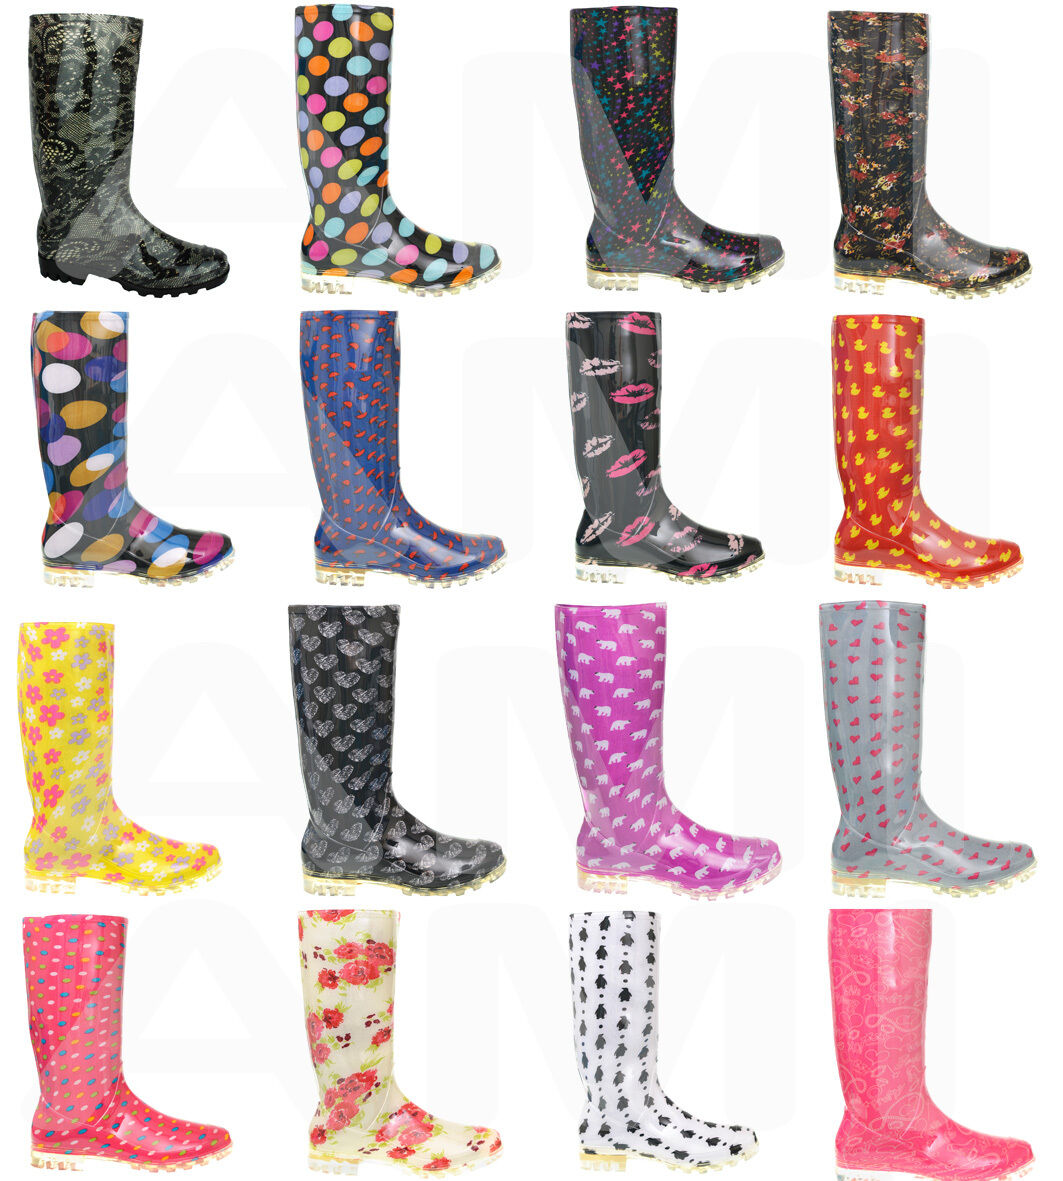 Grandes zapatos con descuento LADIES WOMENS GIRLS WELLIES BOOTS SIZES 3 4 5 6 6.5 7 WINTER WELLY OUTDOORS COLD